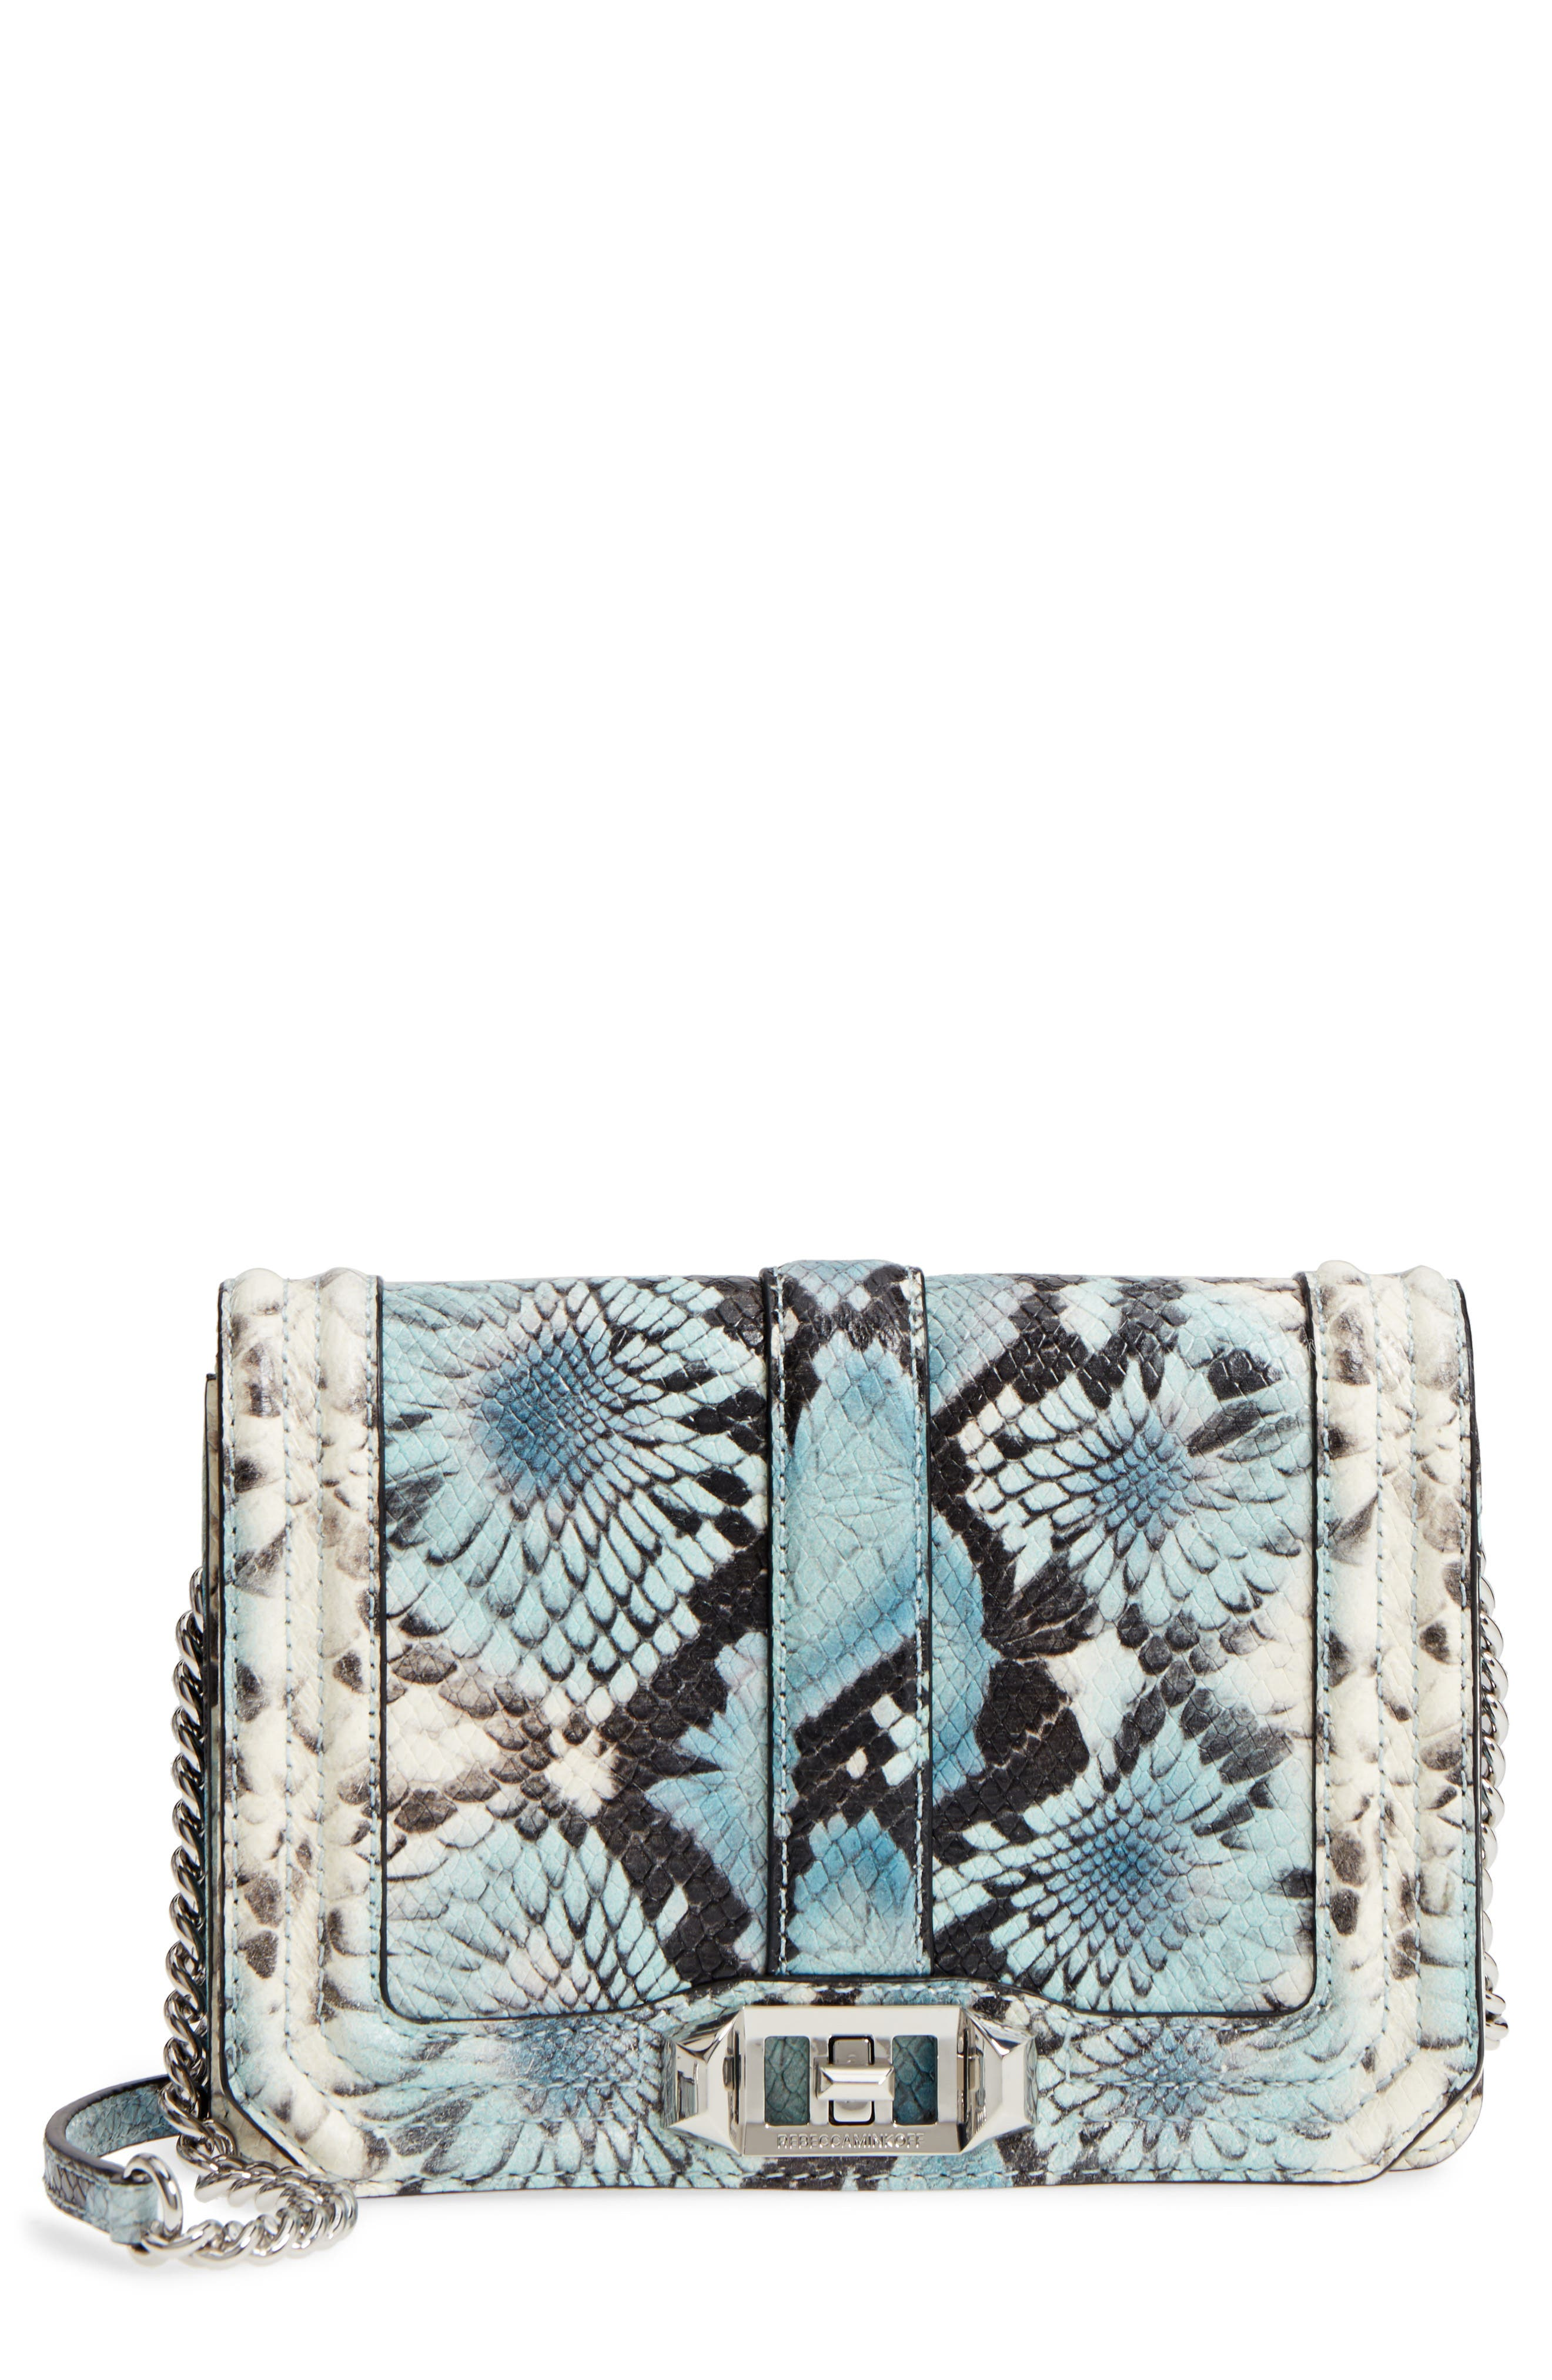 Main Image - Rebecca Minkoff Small Love Snake Embossed Leather Crossbody Bag